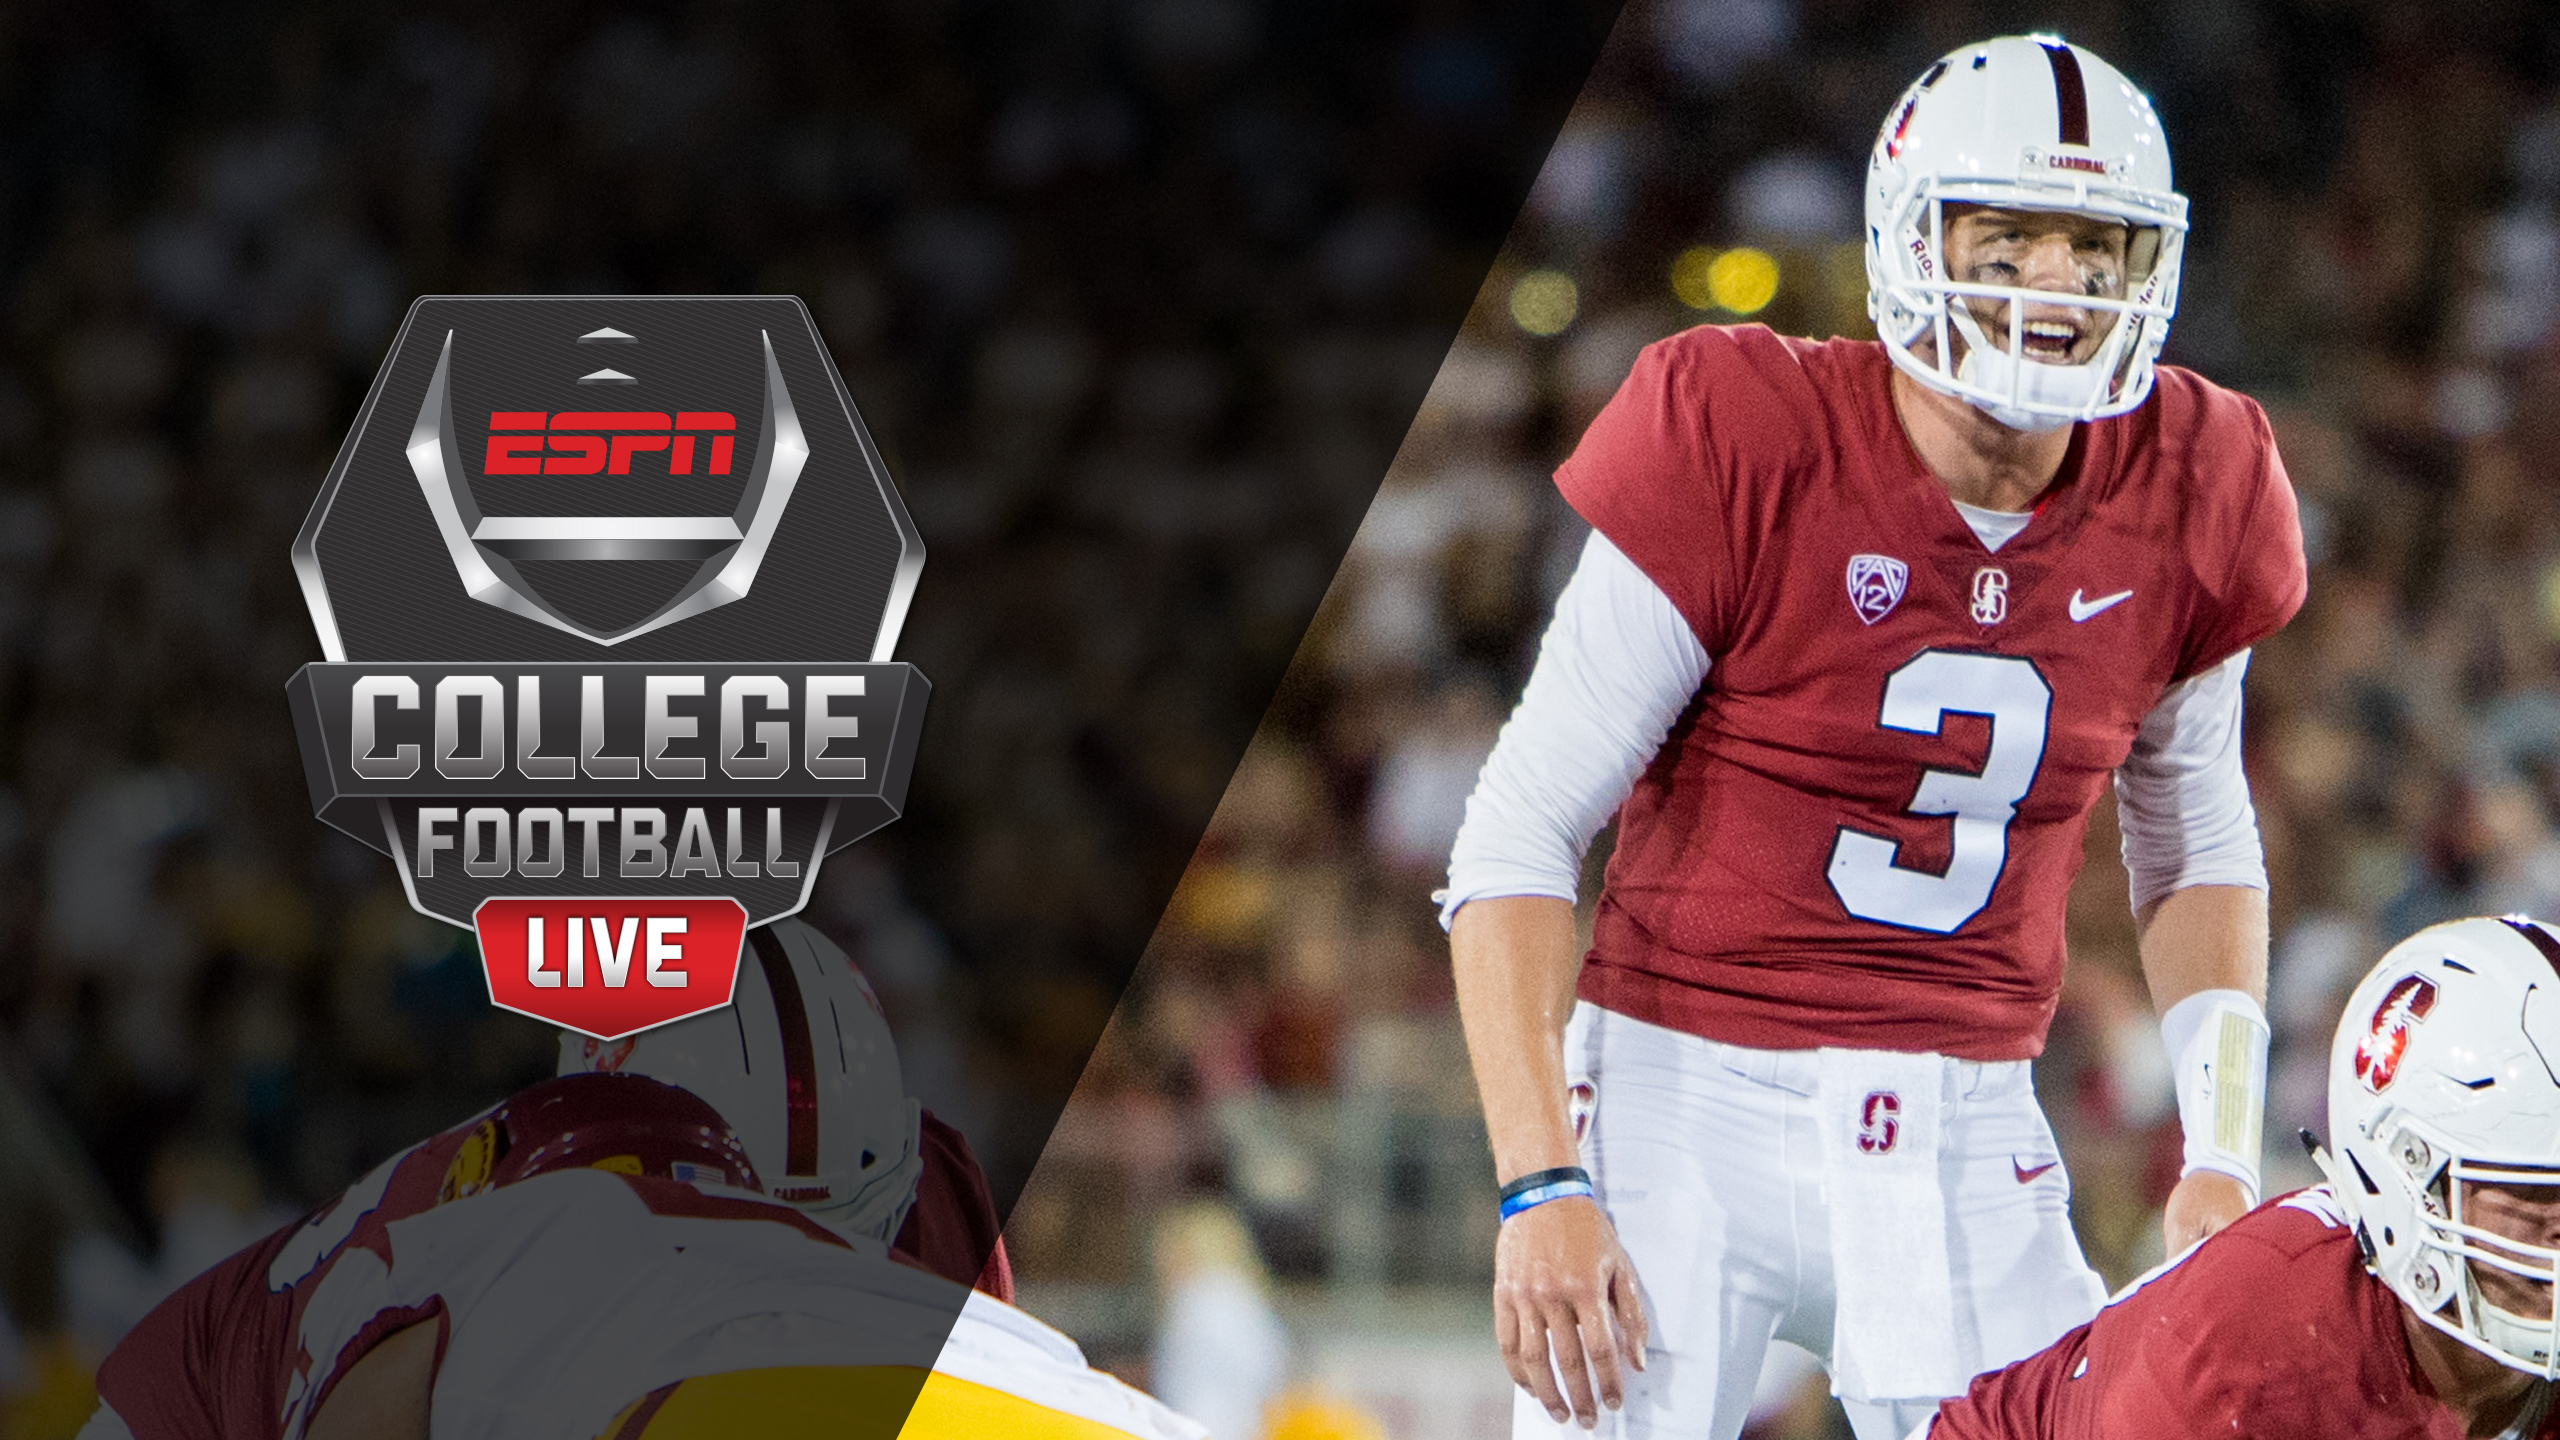 Thu, 9/20 - College Football Live Presented by Dr Pepper